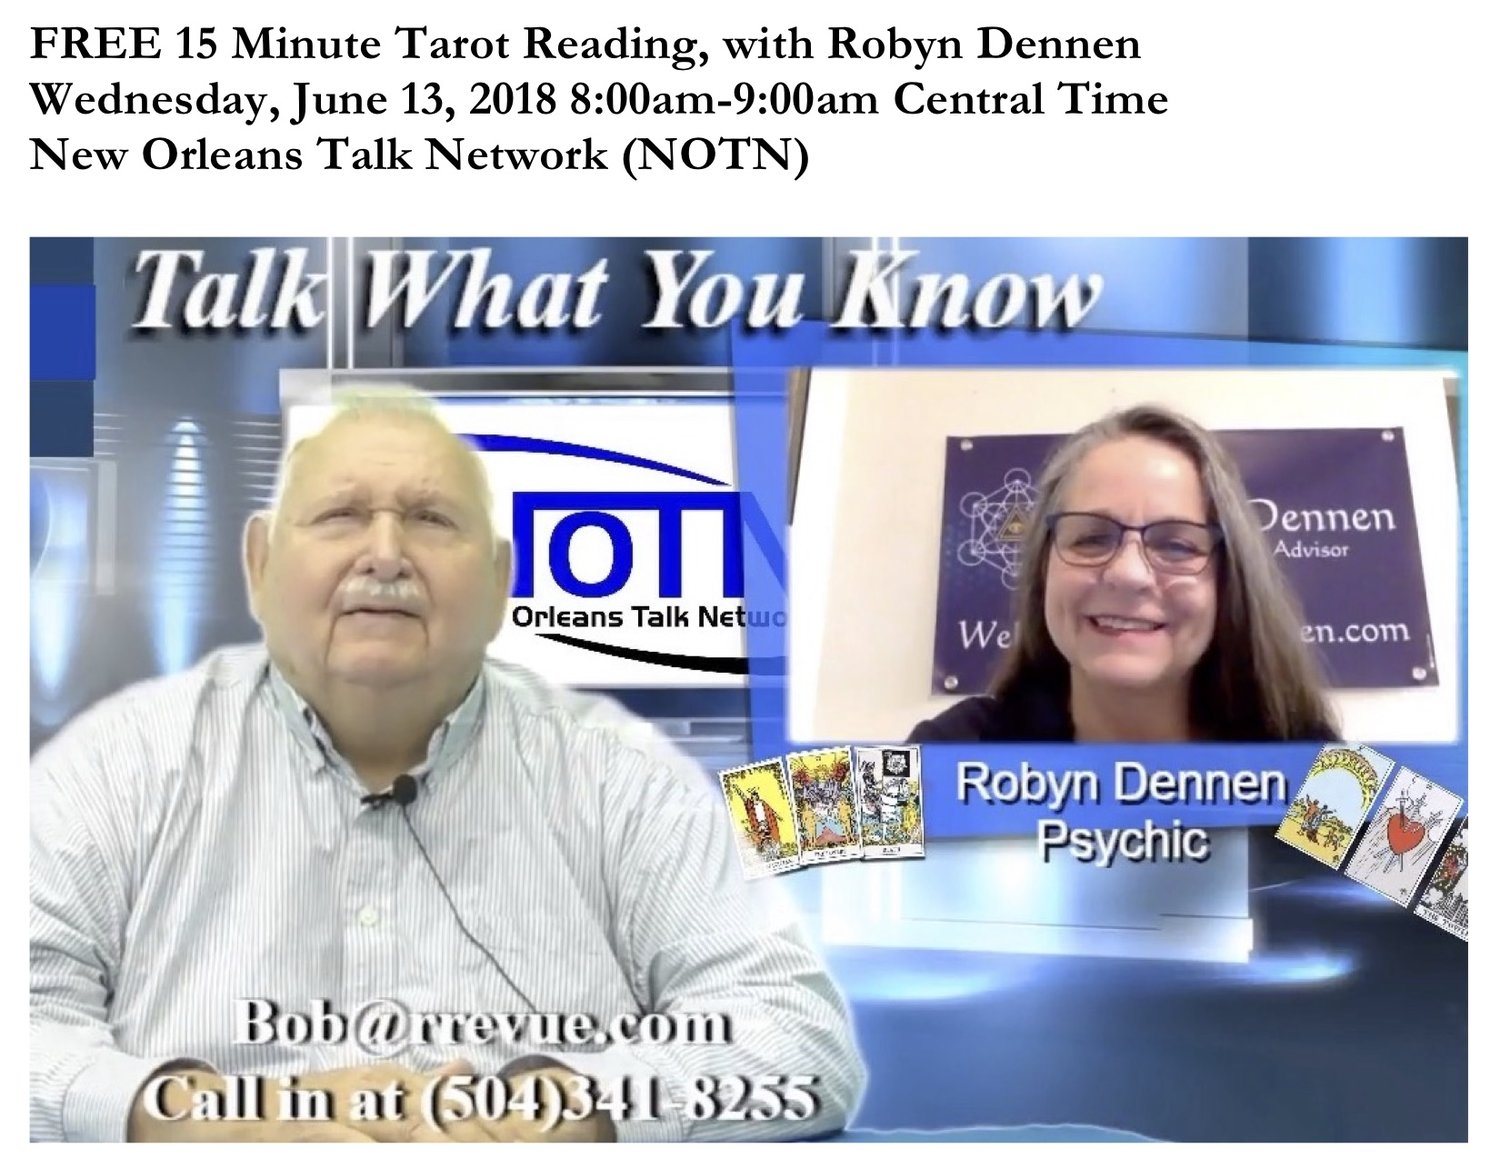 Talk to the Tarot ~ July 2018 New Orleans Talk Network — Robyn Dennen